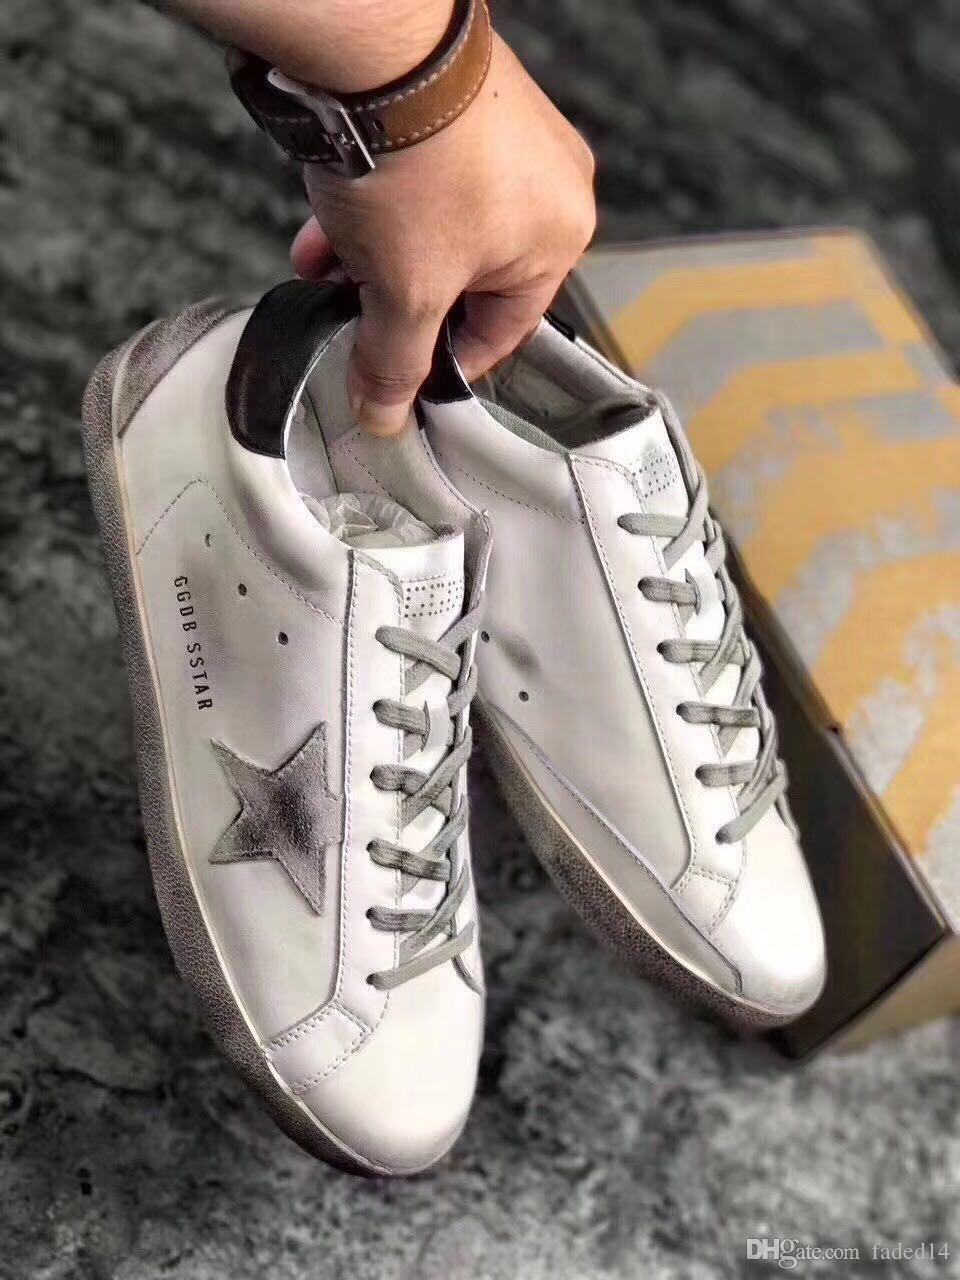 2017-golden-goose-ggdb-shoes-silver-sequined.jpg